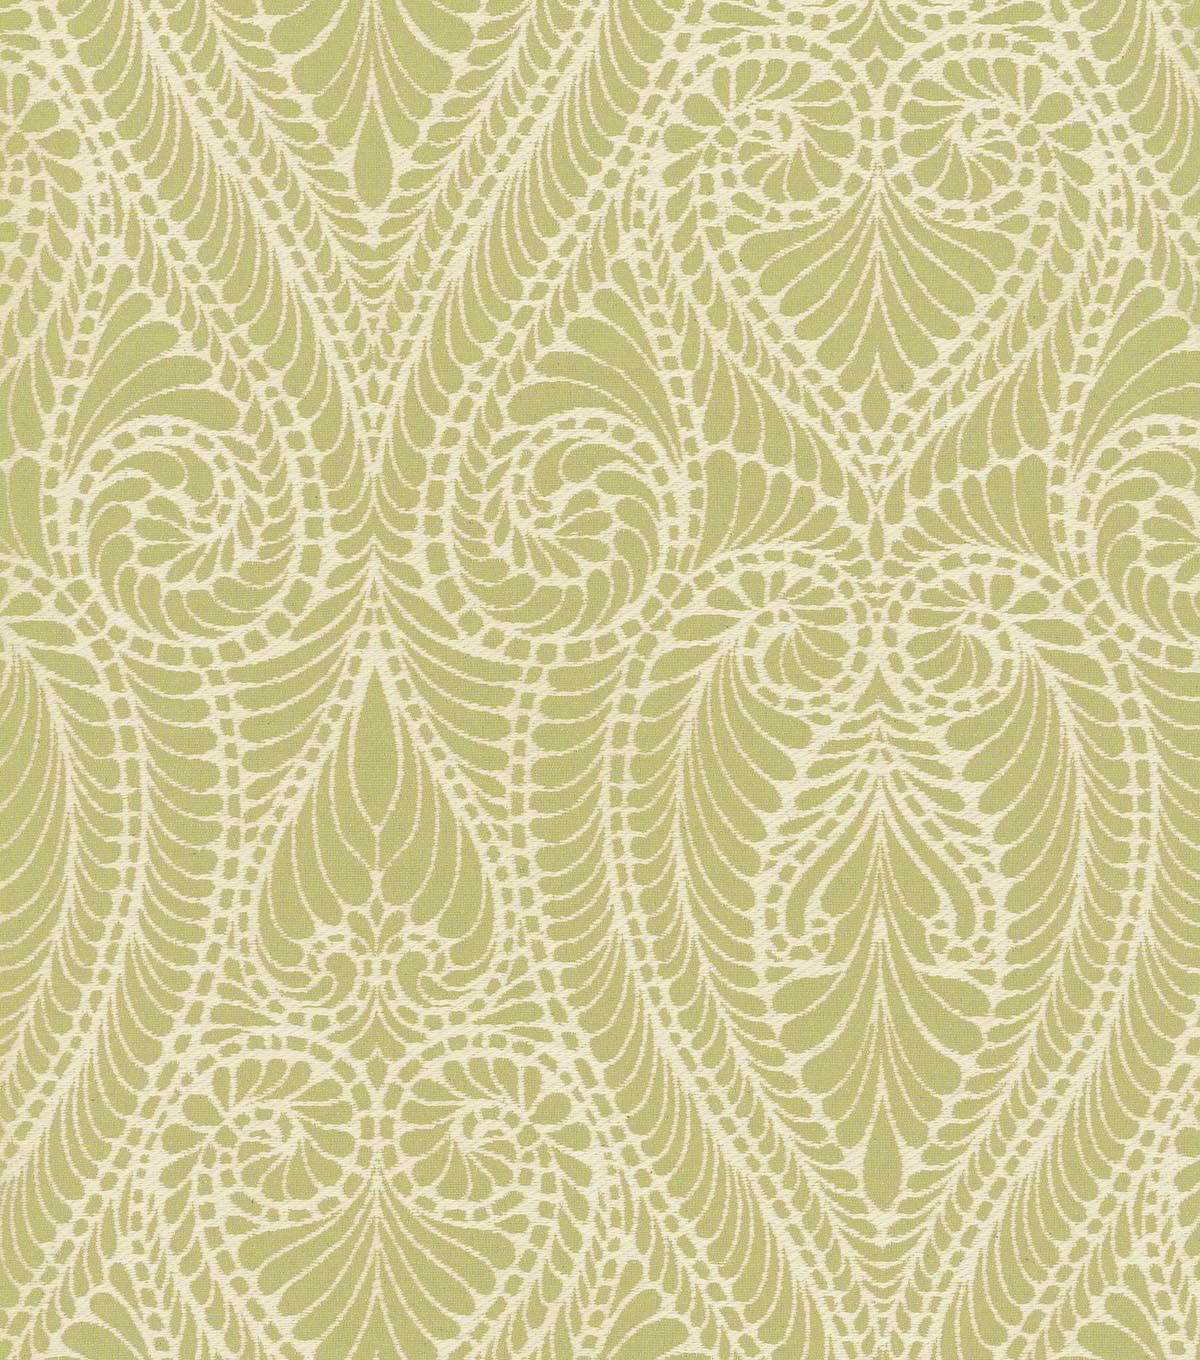 Home Decor 8\u0022x8\u0022 Swatch Fabric-IMAN Home Isen Damask Bamboo